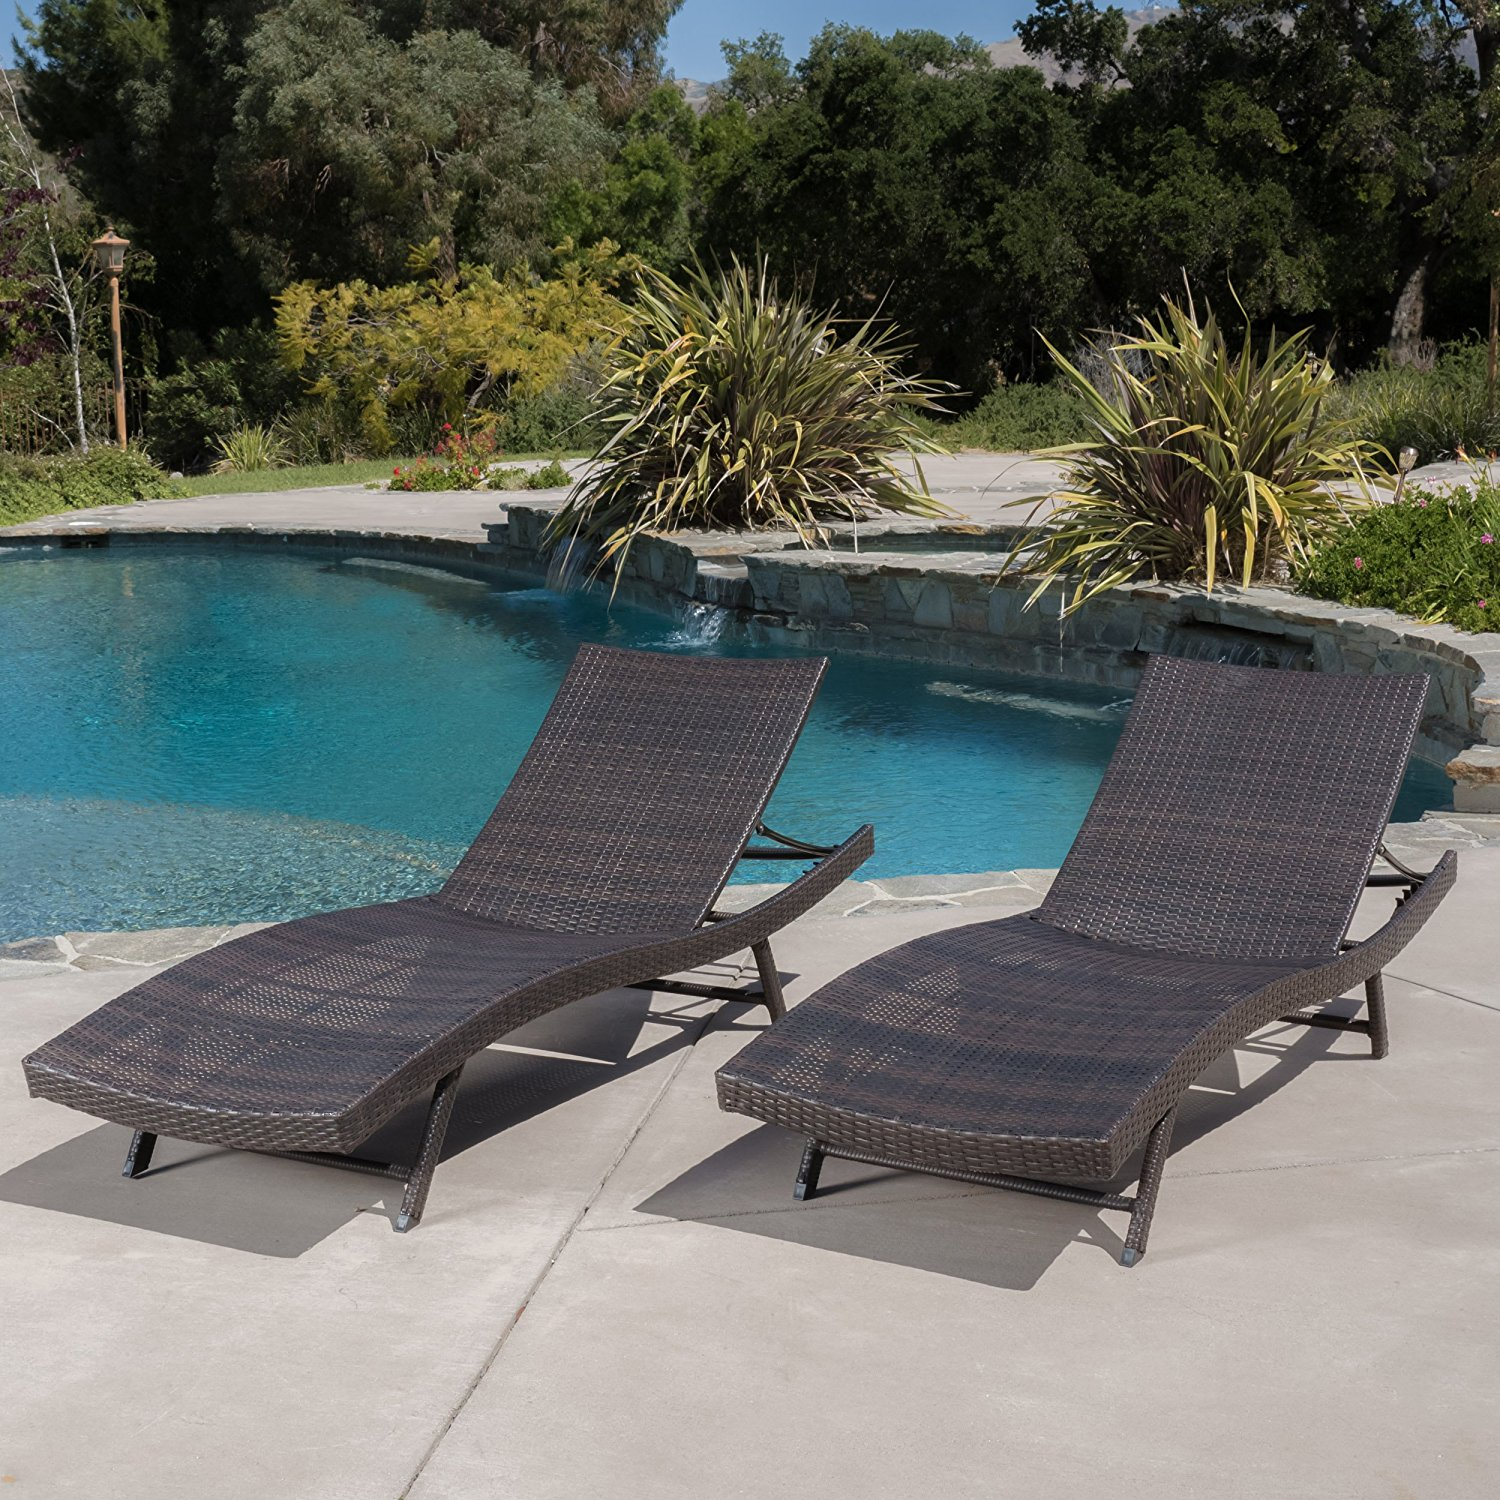 Pool Deck Chairs Best Pool Chairs And Patio Chaise Lounge 2018